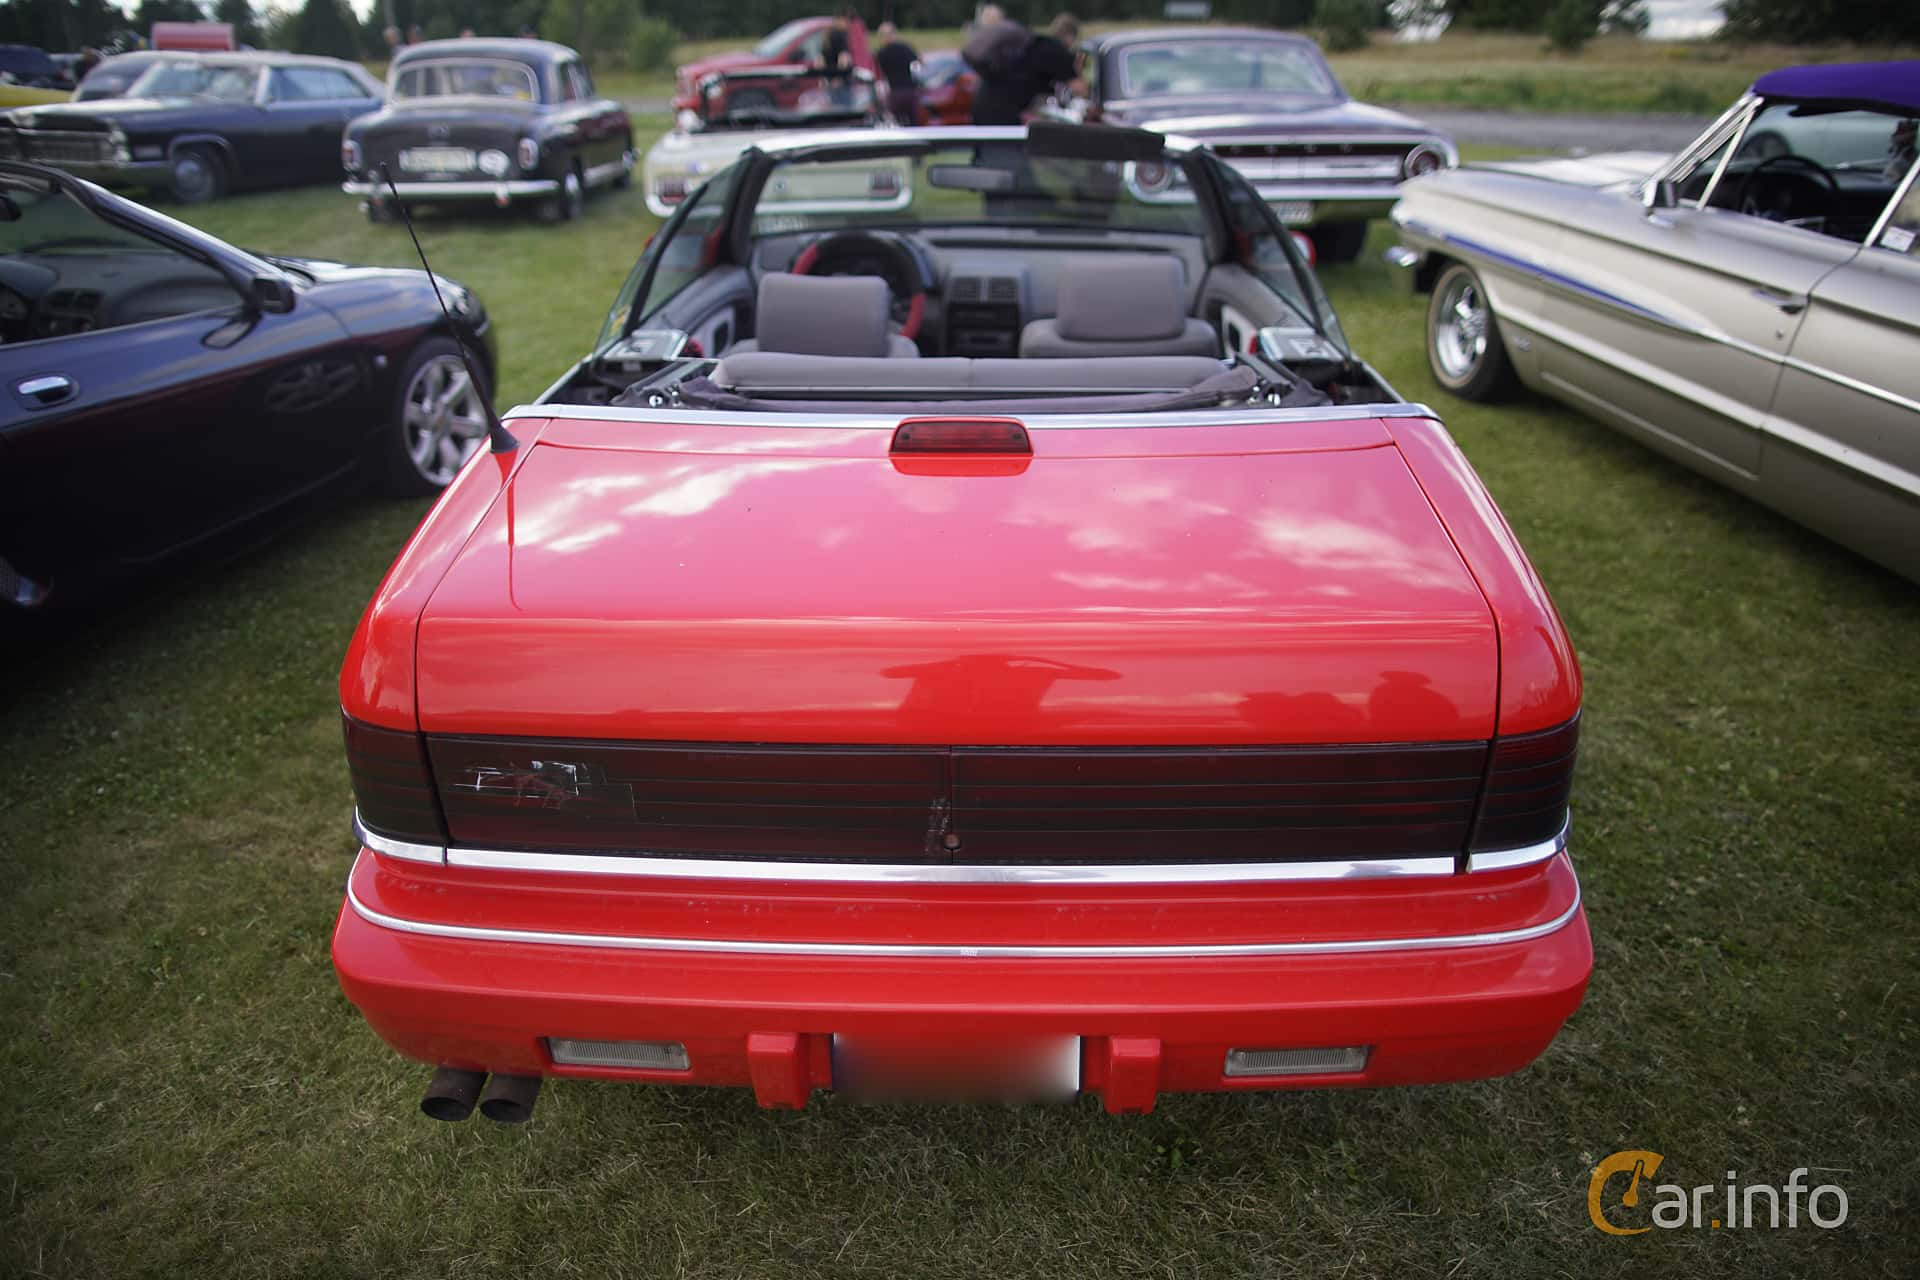 3 images of chrysler lebaron convertible 30 v6 automatic 143hp back of chrysler lebaron convertible 30 v6 automatic 143ps 1991 at motortrffar p nifsta sciox Image collections